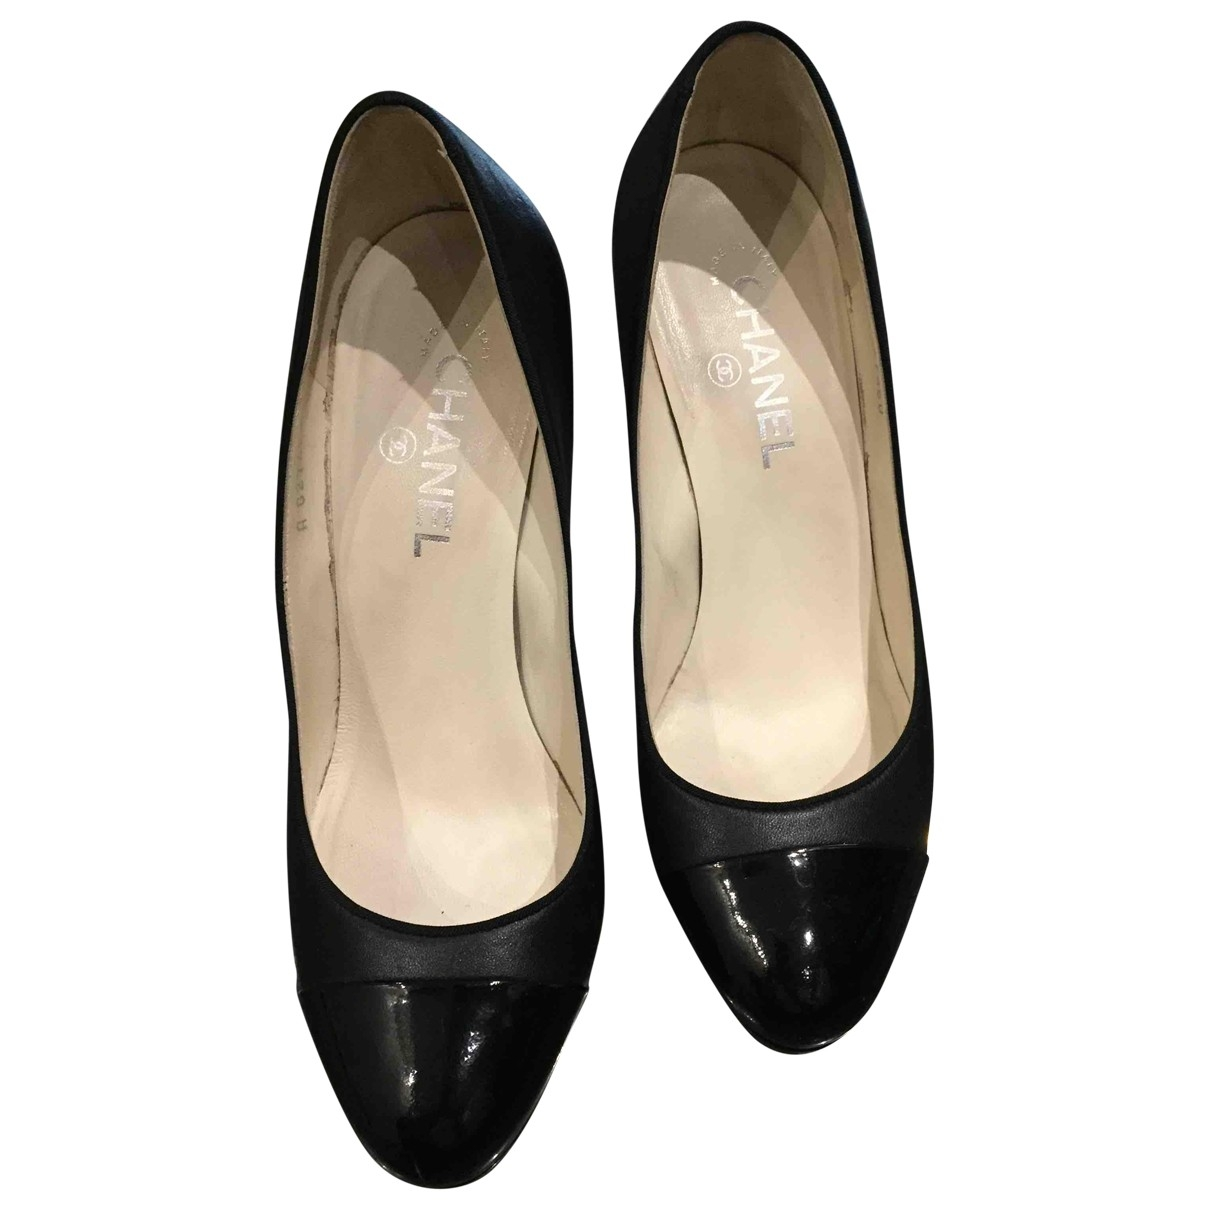 Chanel \N Black Leather Heels for Women 38.5 EU